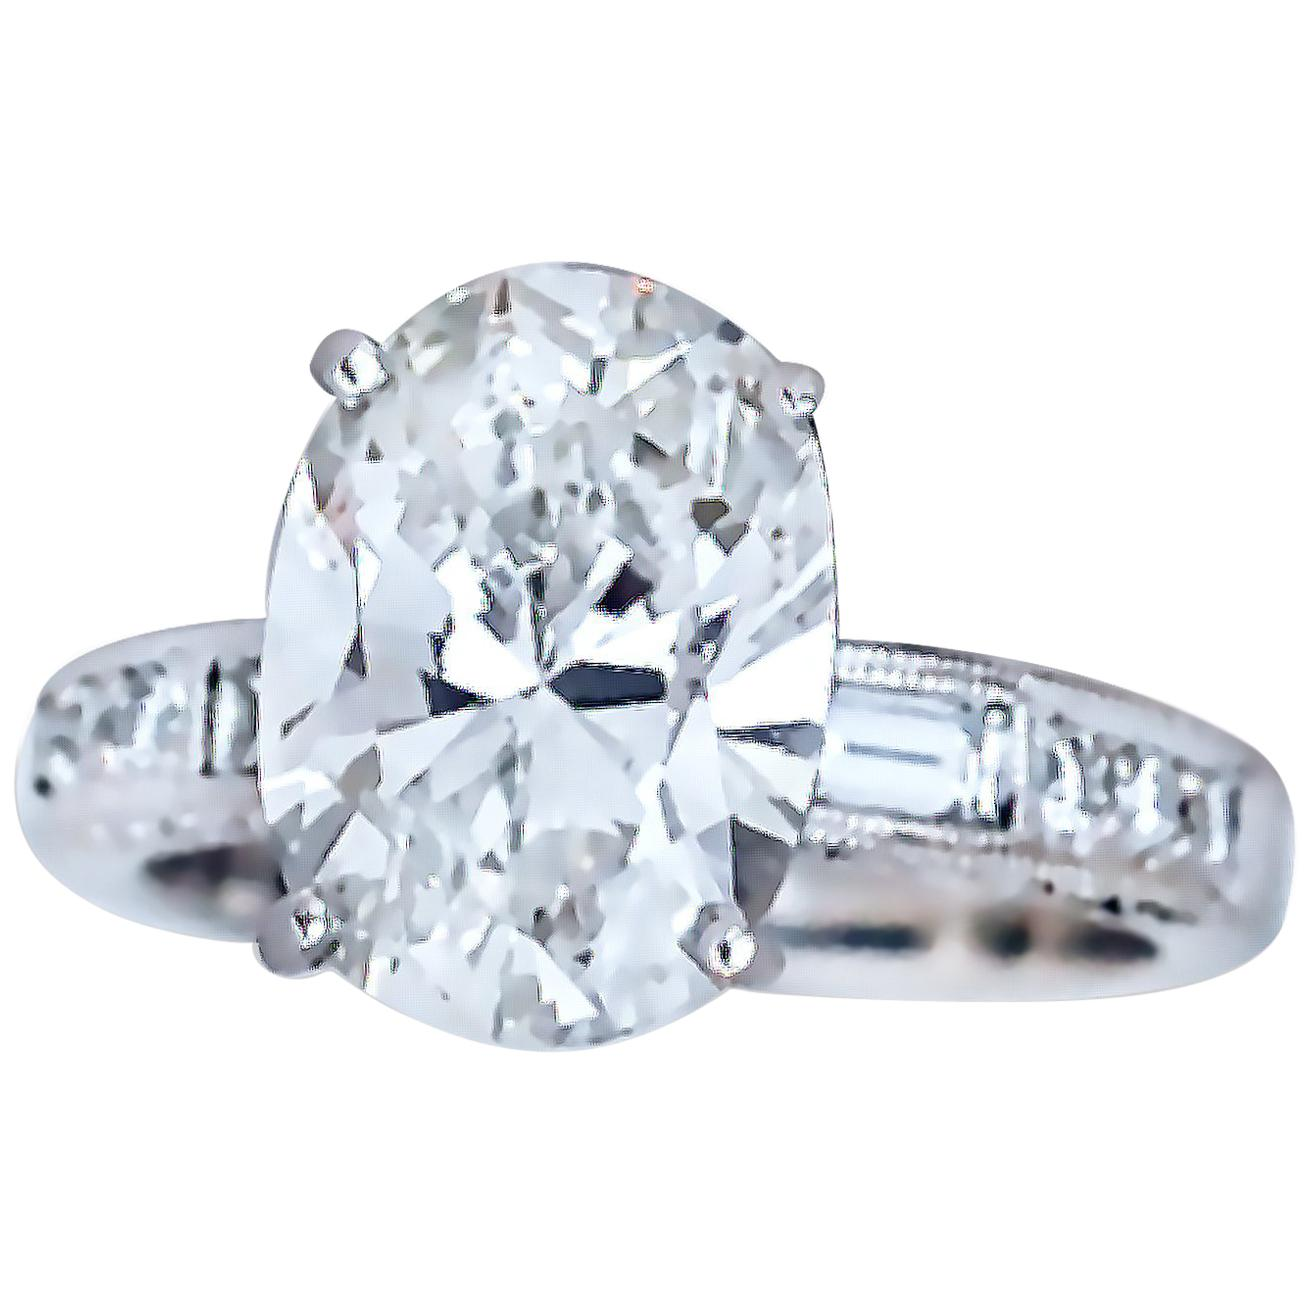 GIA Certified 4.5 Carat Oval H-VS2 Diamond Engagement Ring